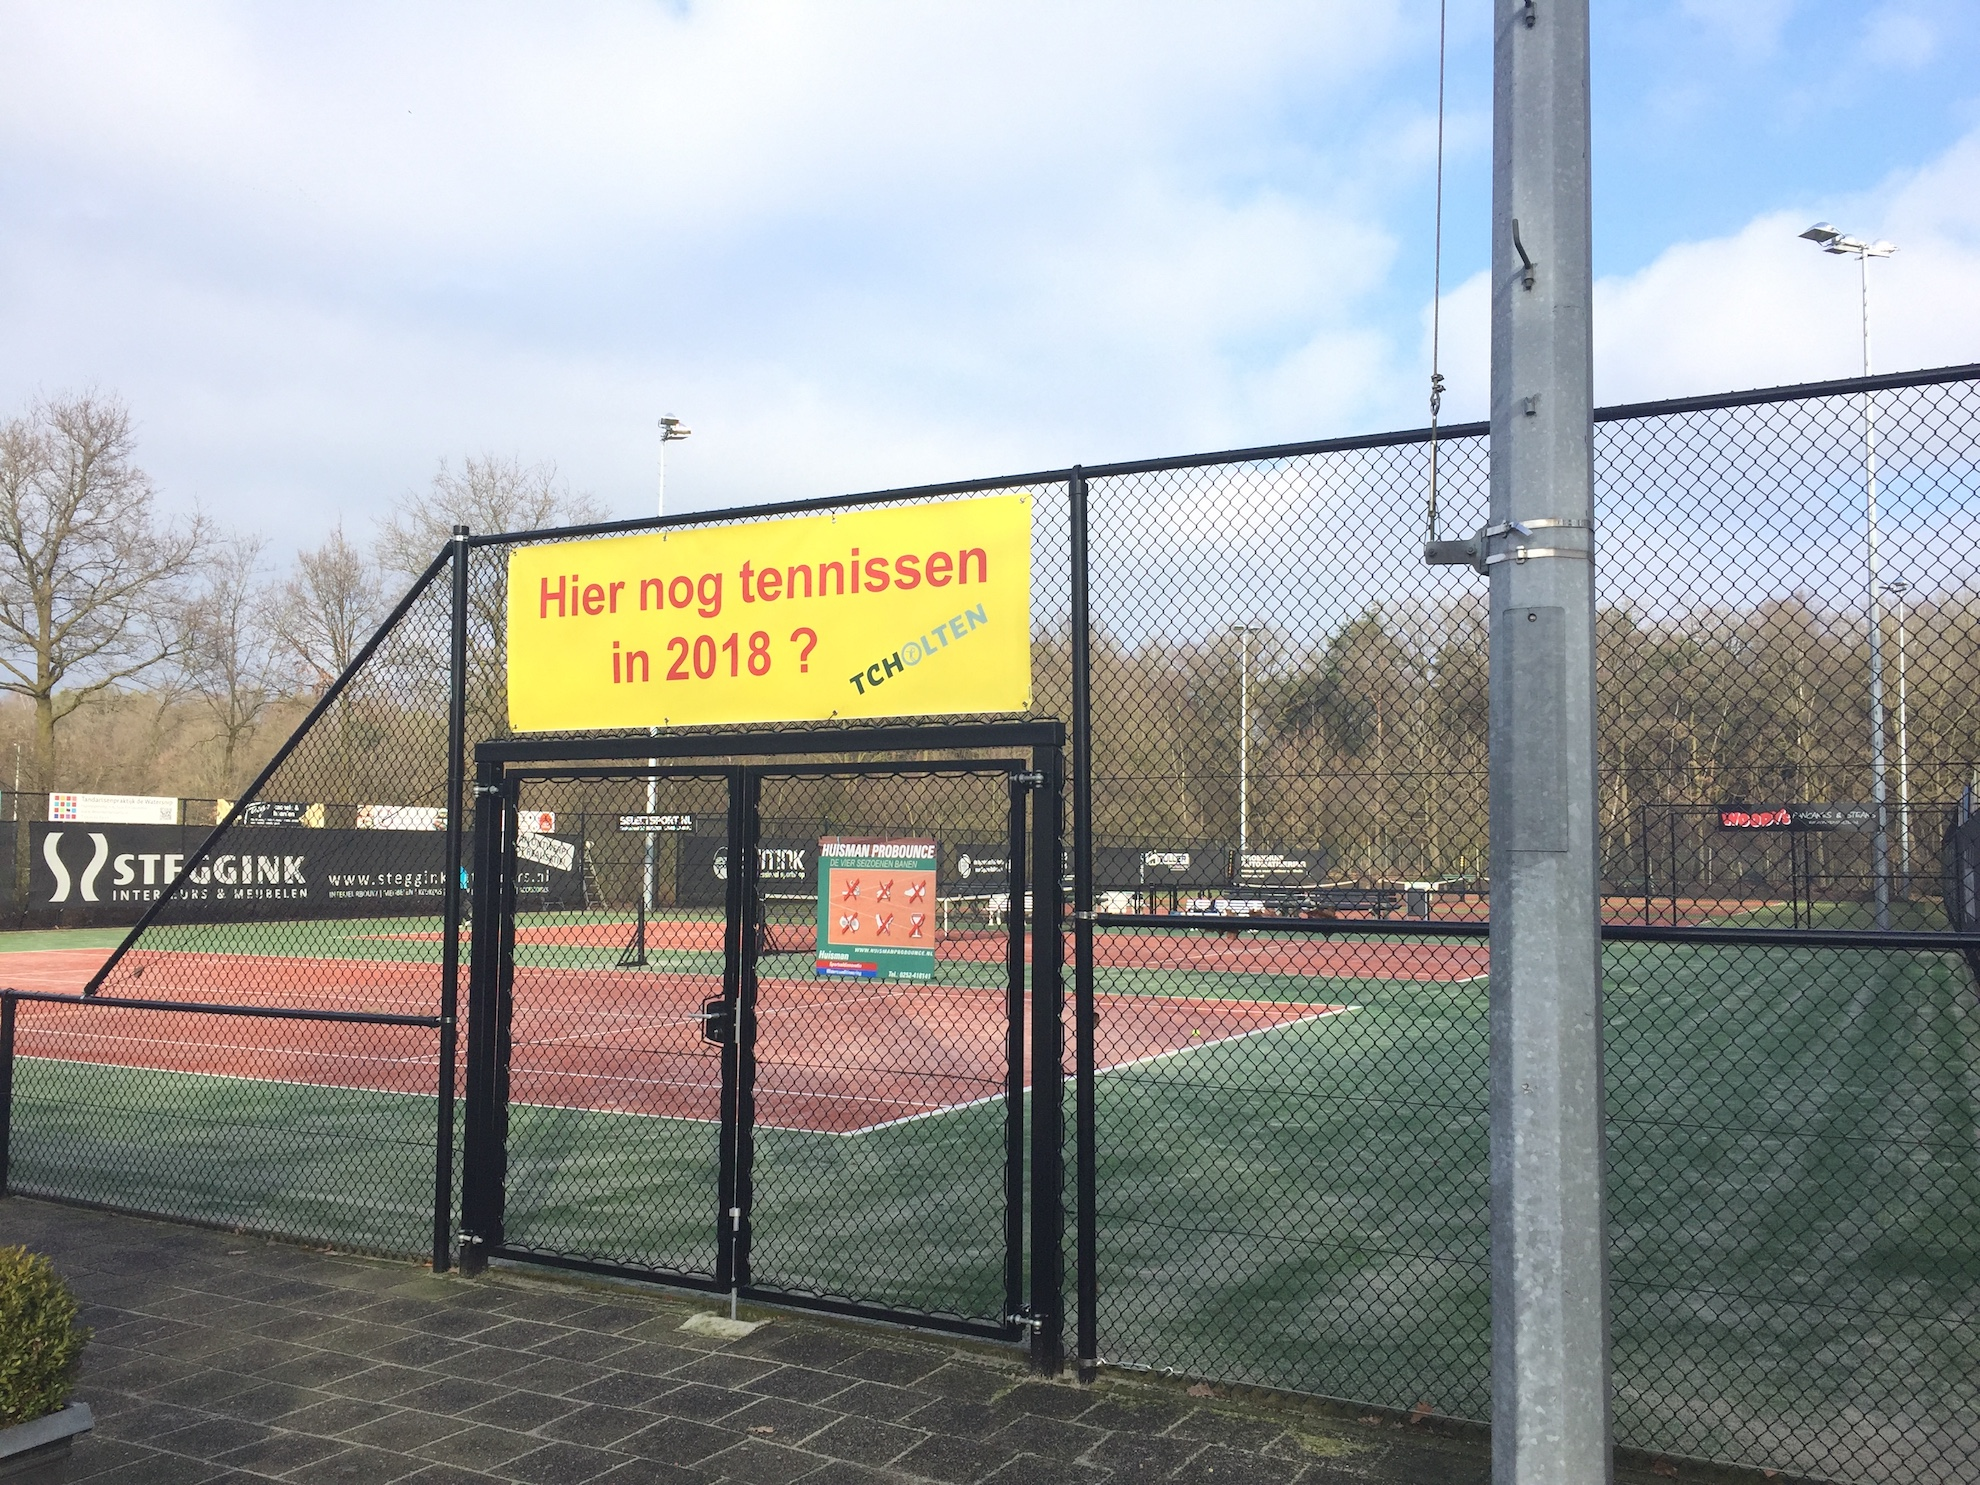 Hier nog tennissen in 2018?